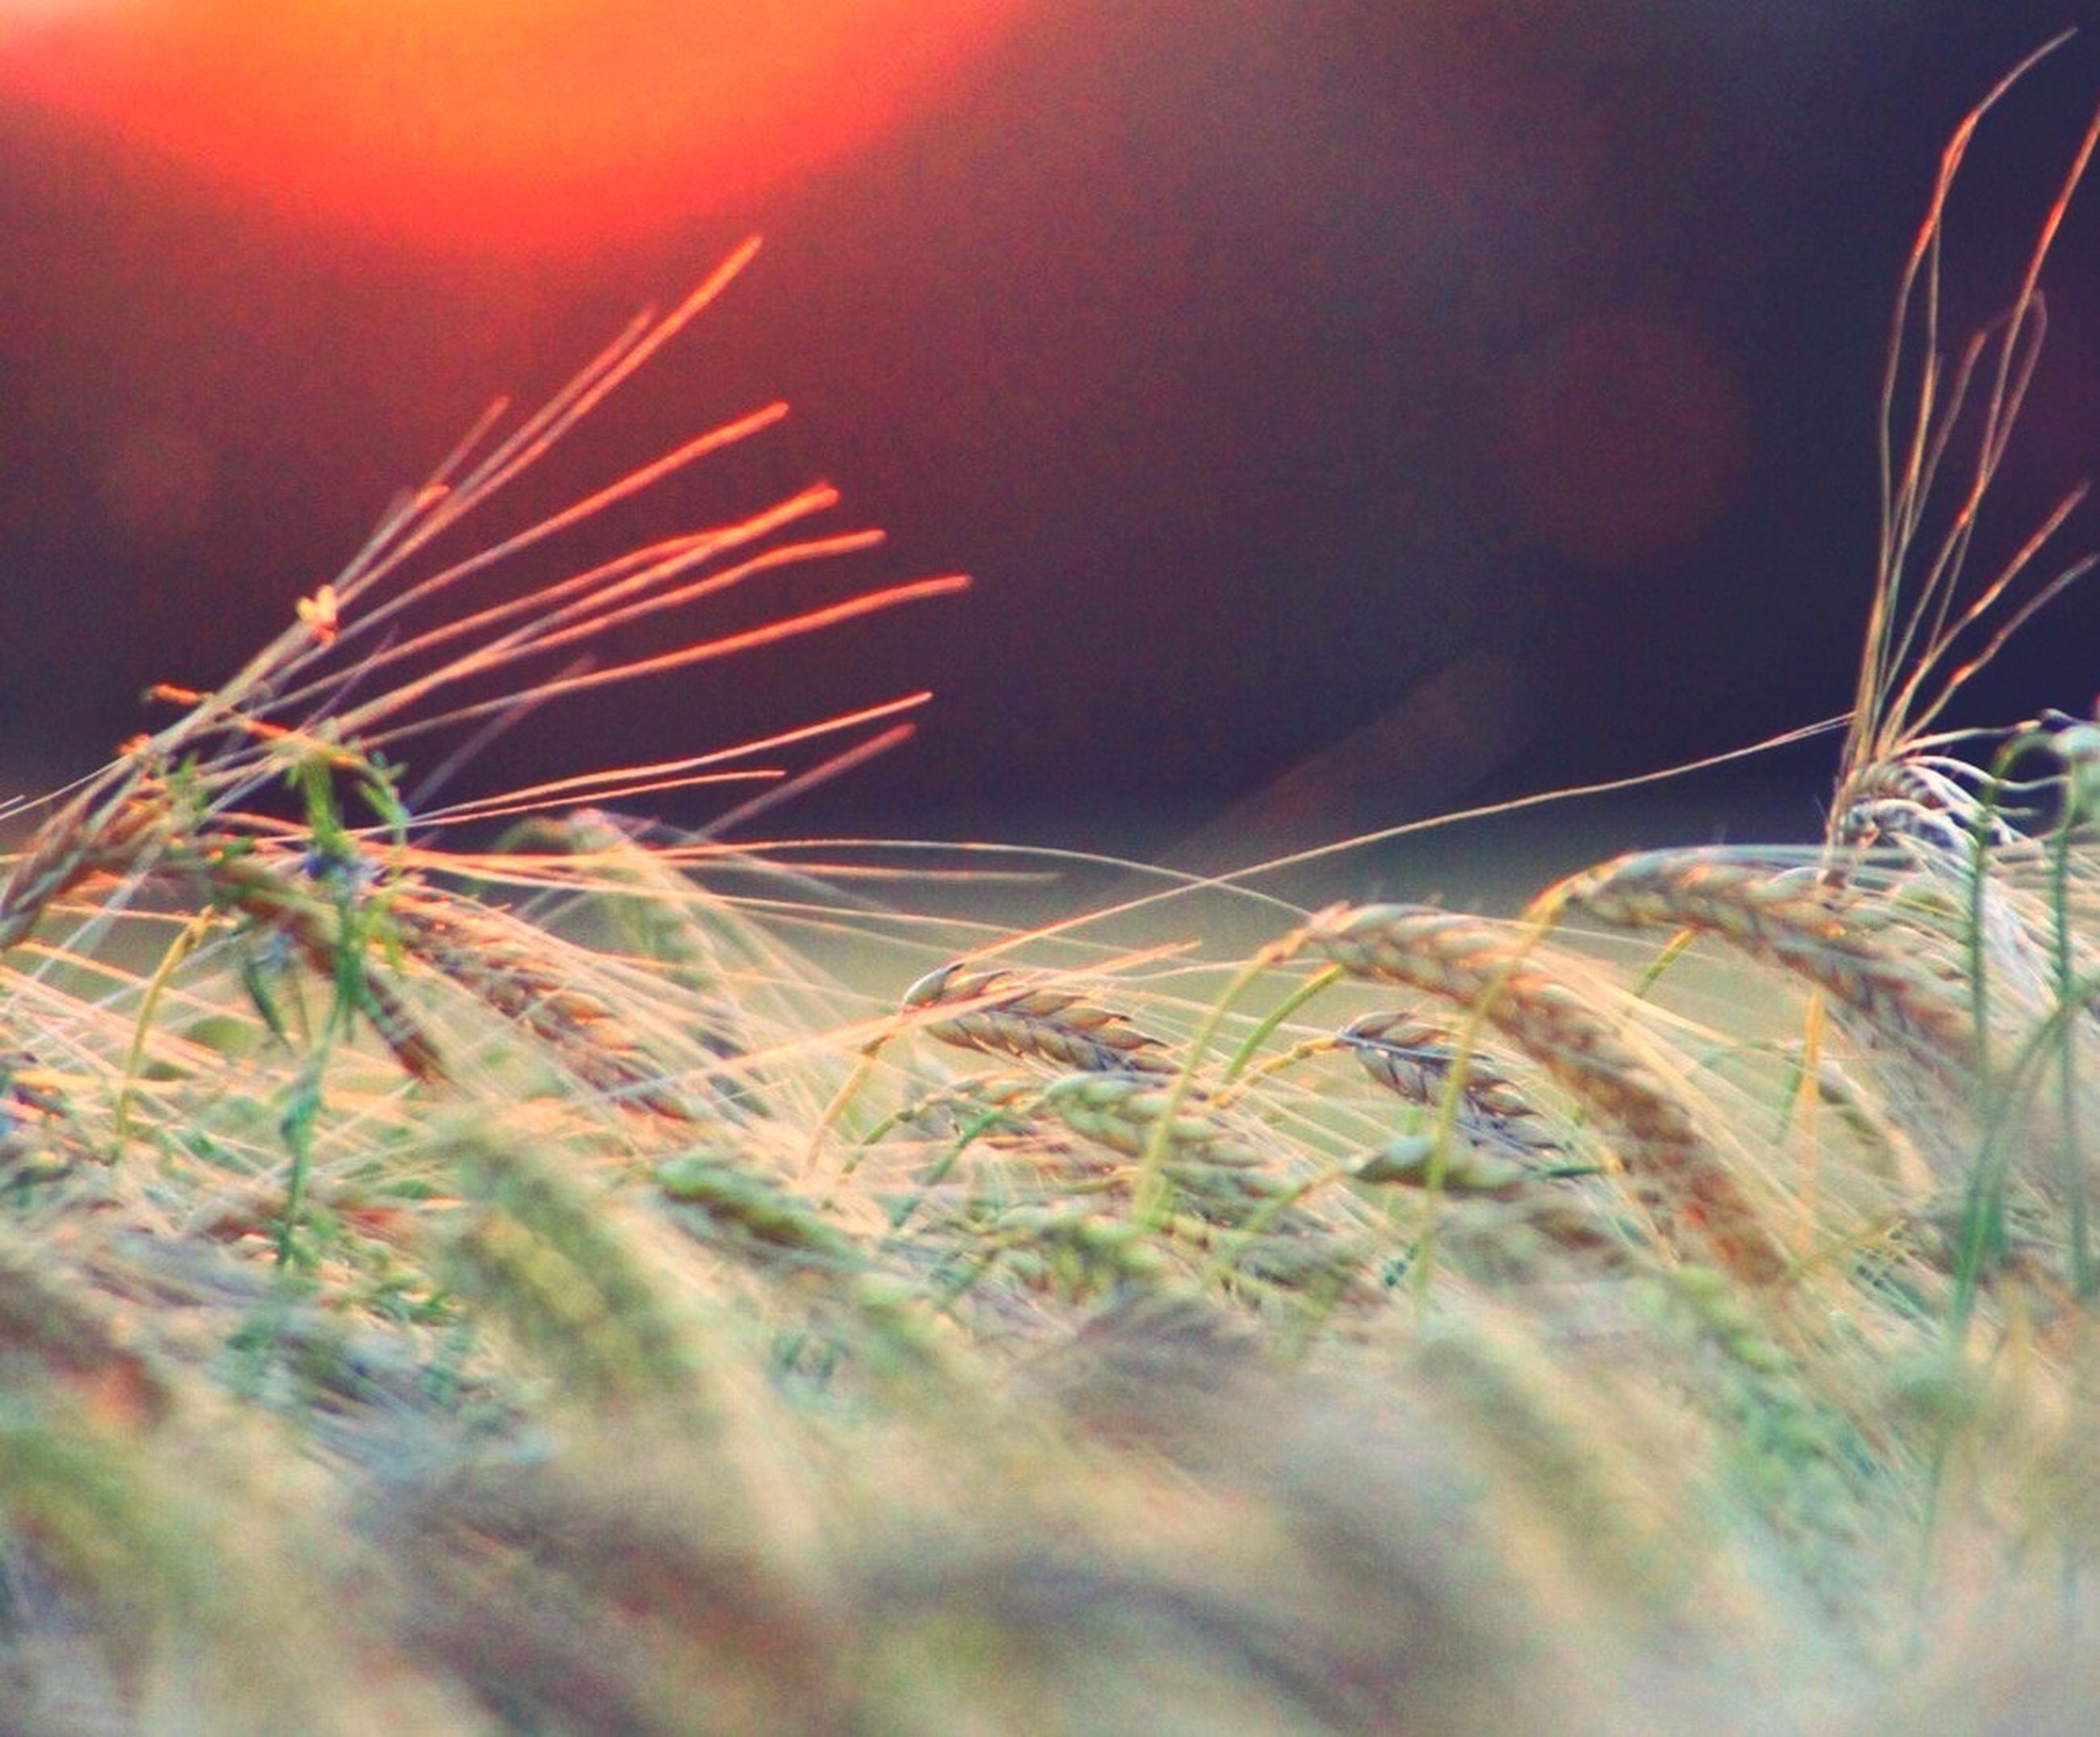 sky, growth, nature, grass, plant, low angle view, beauty in nature, tranquility, field, outdoors, no people, tranquil scene, close-up, focus on foreground, scenics, selective focus, idyllic, day, dusk, landscape